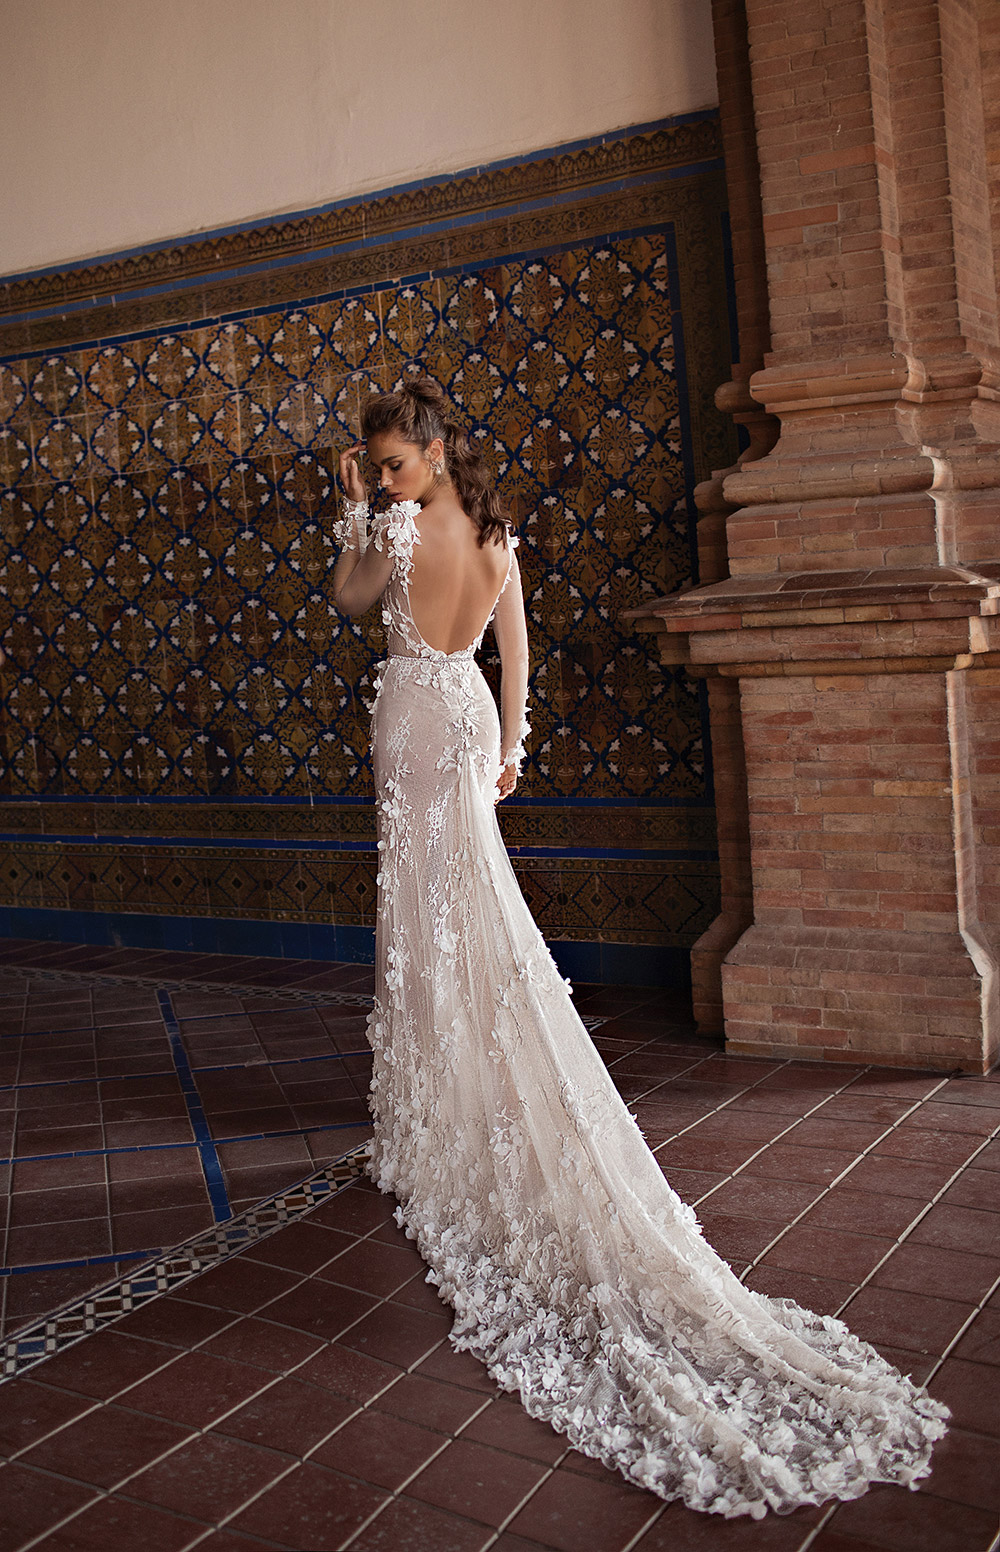 berta-bridal-fall-2018-collection-campaign-34_BG6I3294 - The Wedding ...